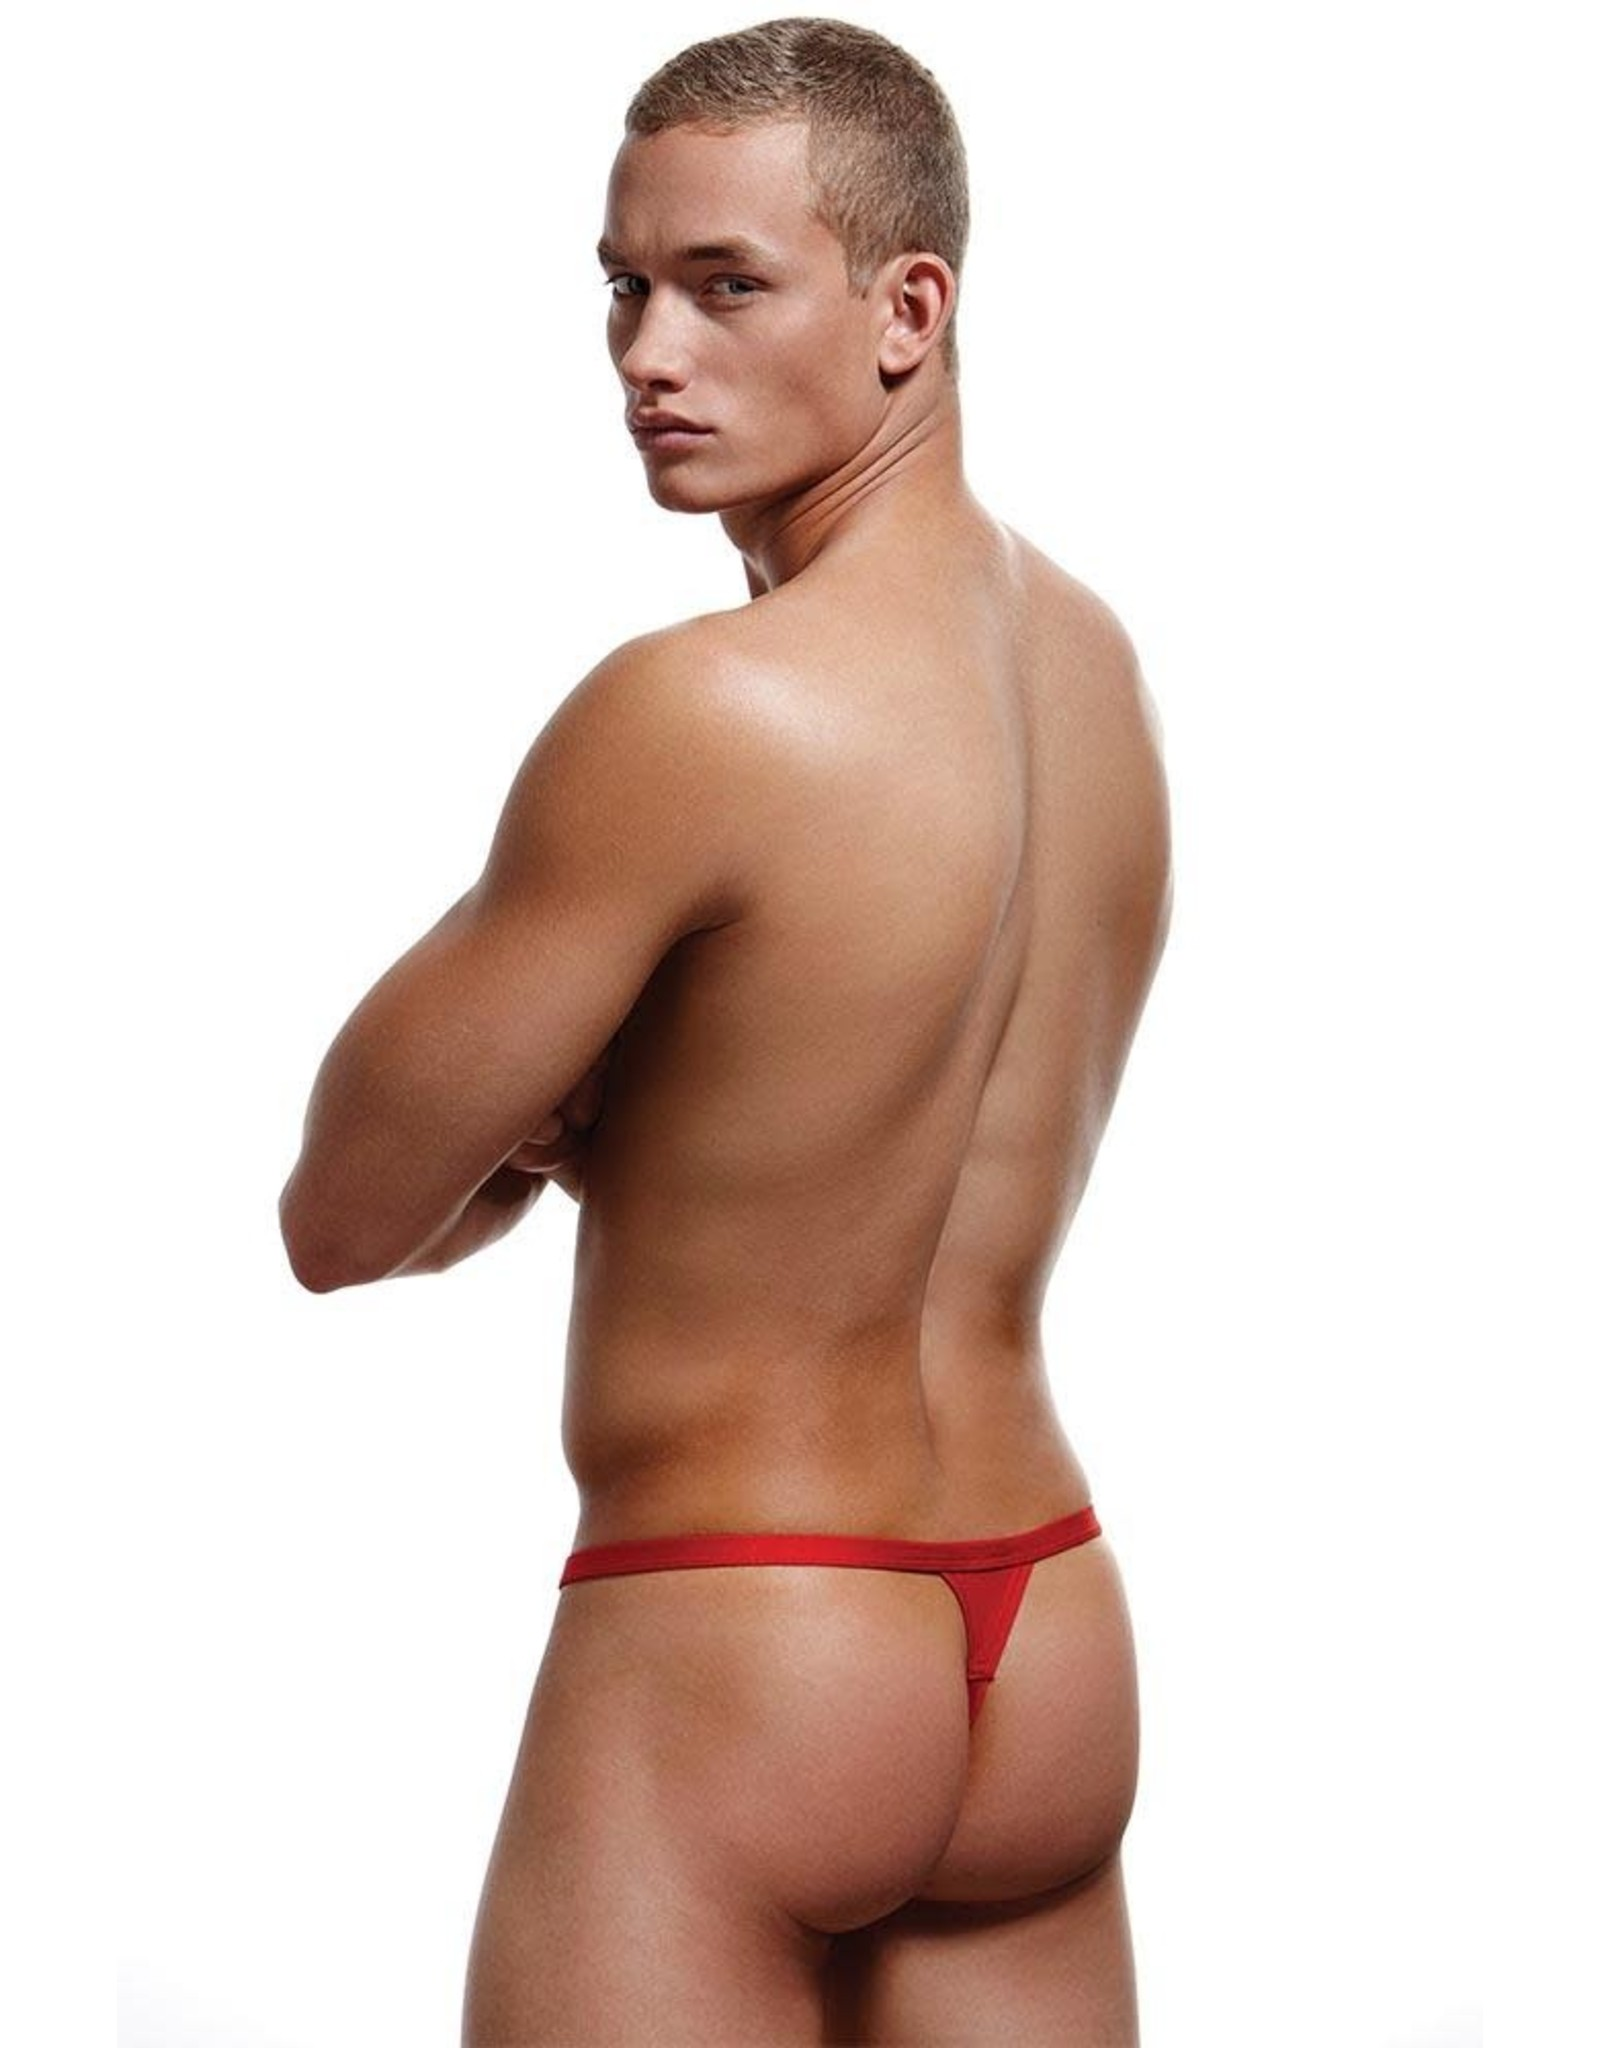 ENVY - BREAKAWAY THONG - S/M - RED